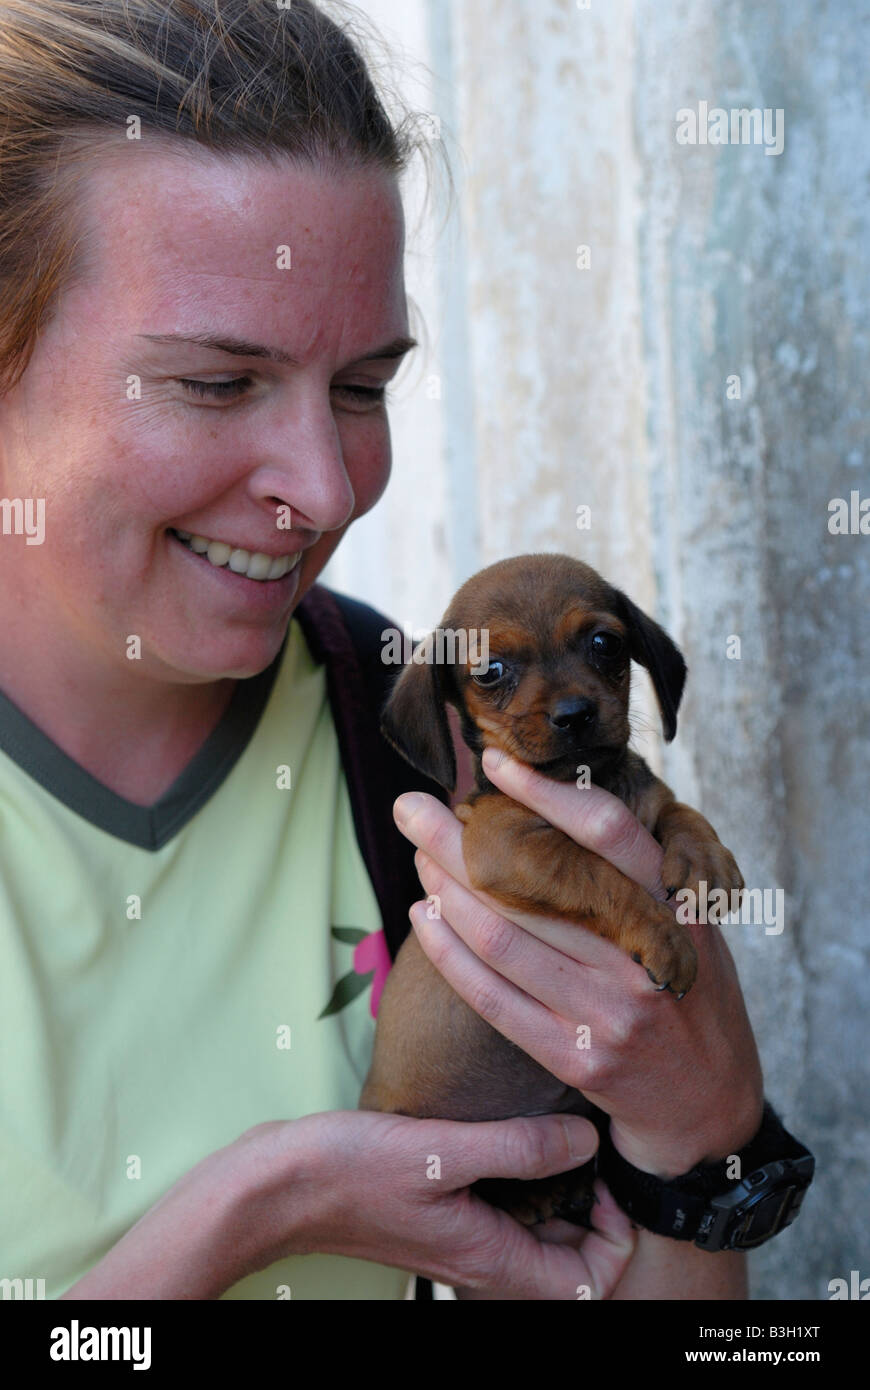 Younger smiling woman holding a puppy Villa Clara Province Cuba April 2007 Stock Photo